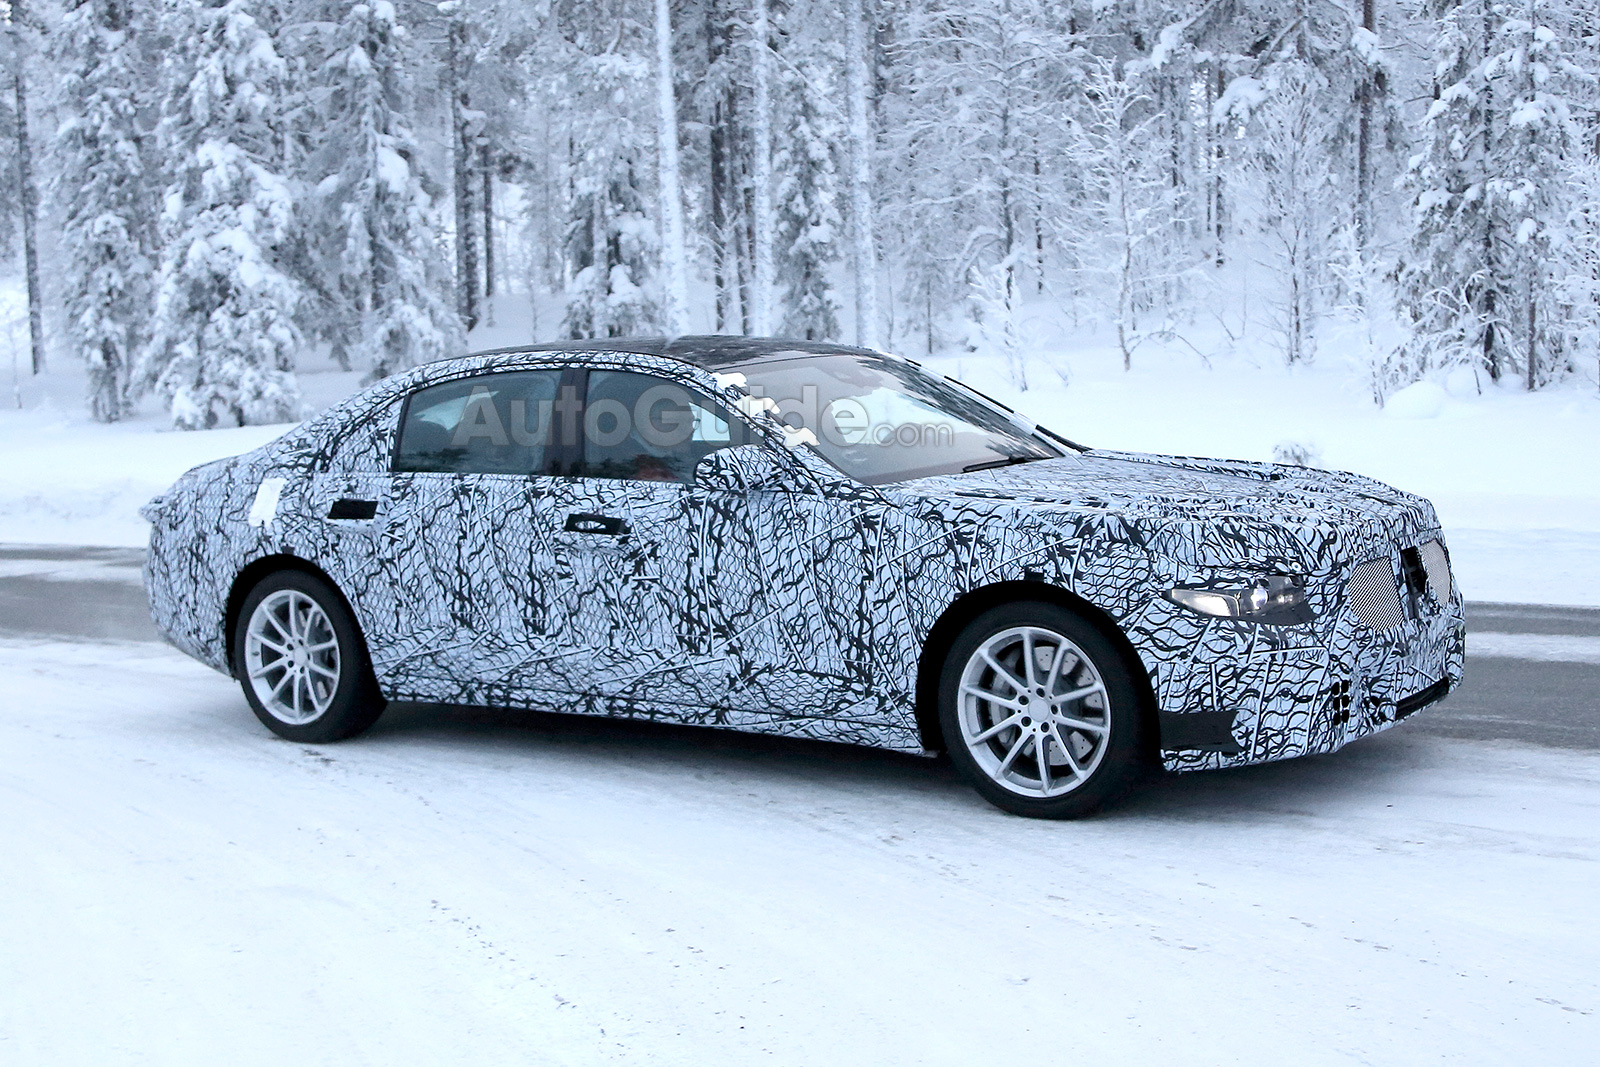 2021 Mercedes-Benz S-Class Breaks Cover While Cold Weather Testing ...